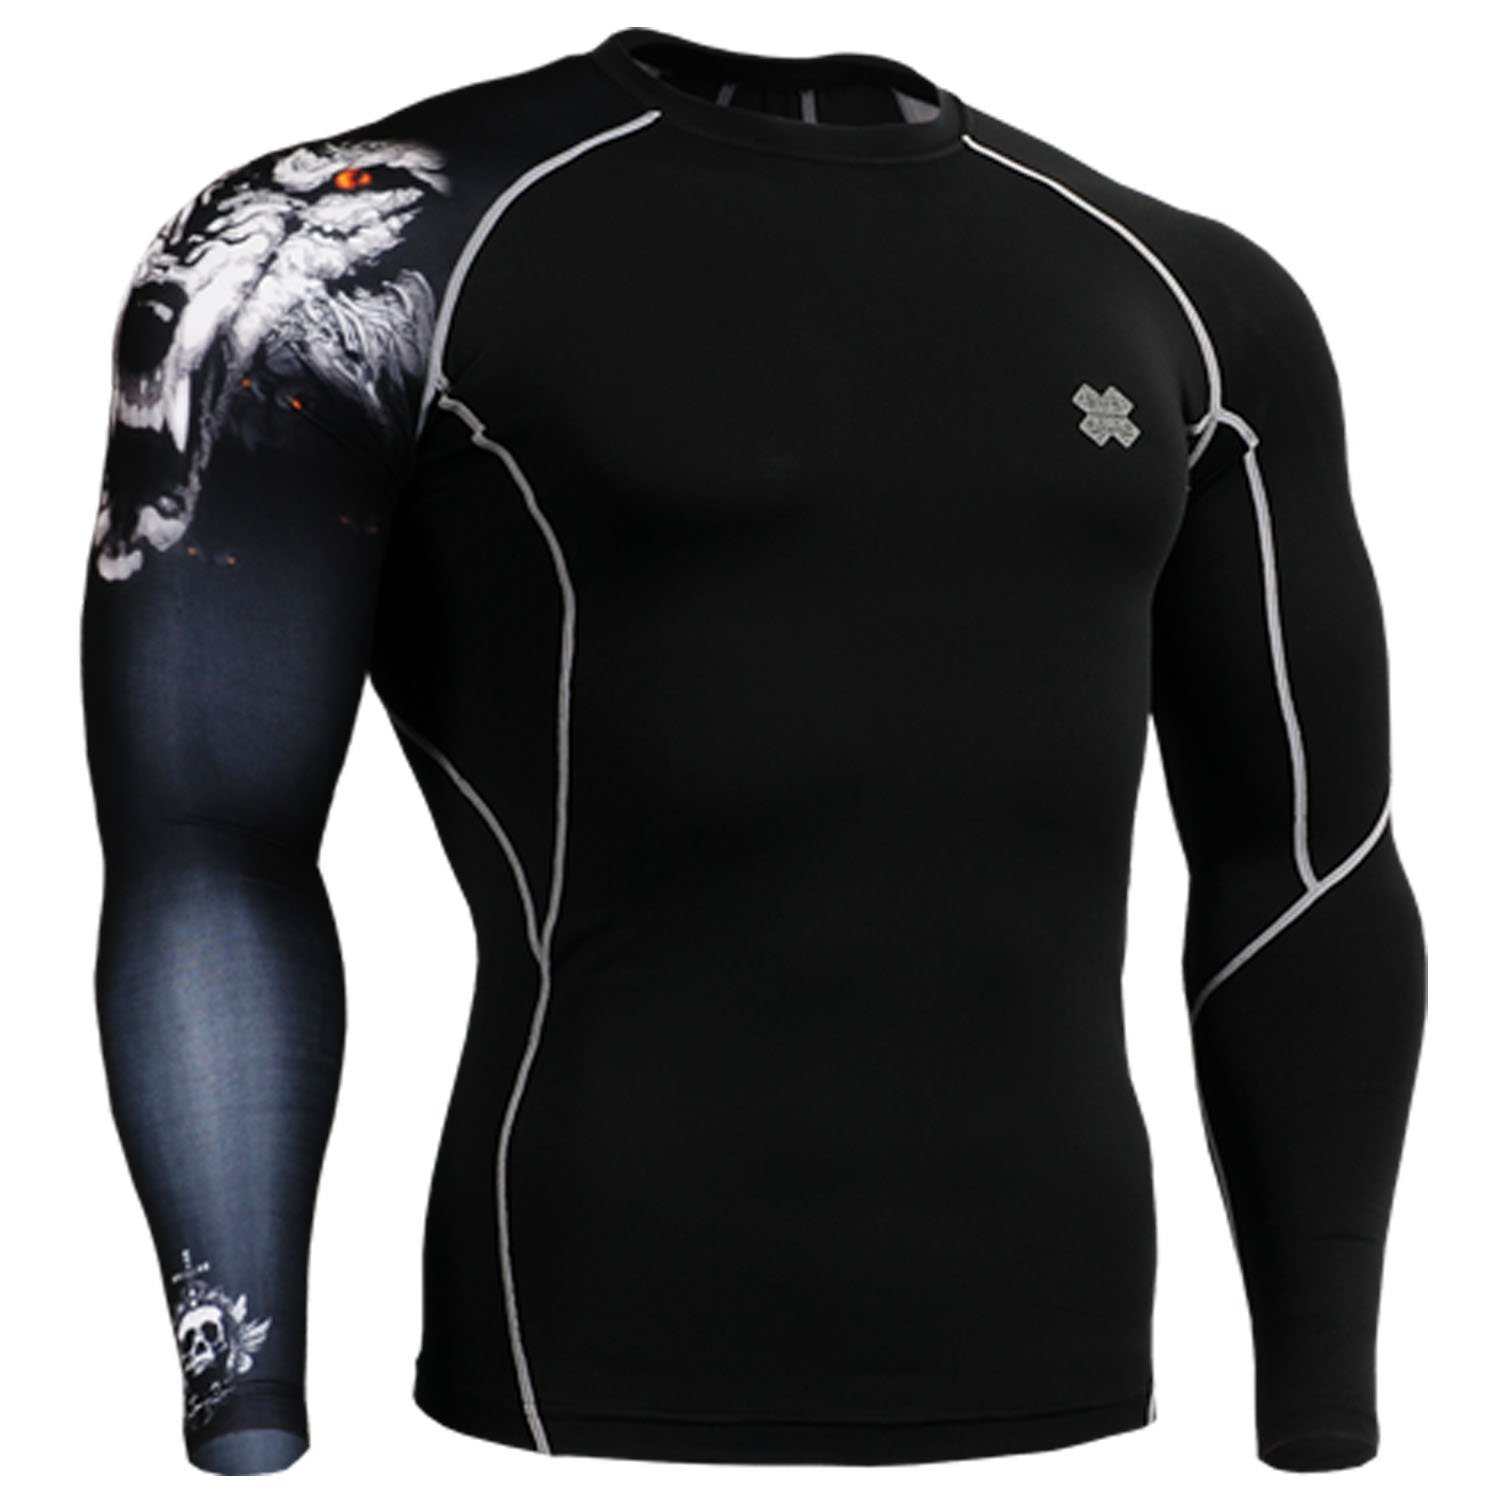 Fixgear Running under compression body armour base layer shirt long sleeve for men s